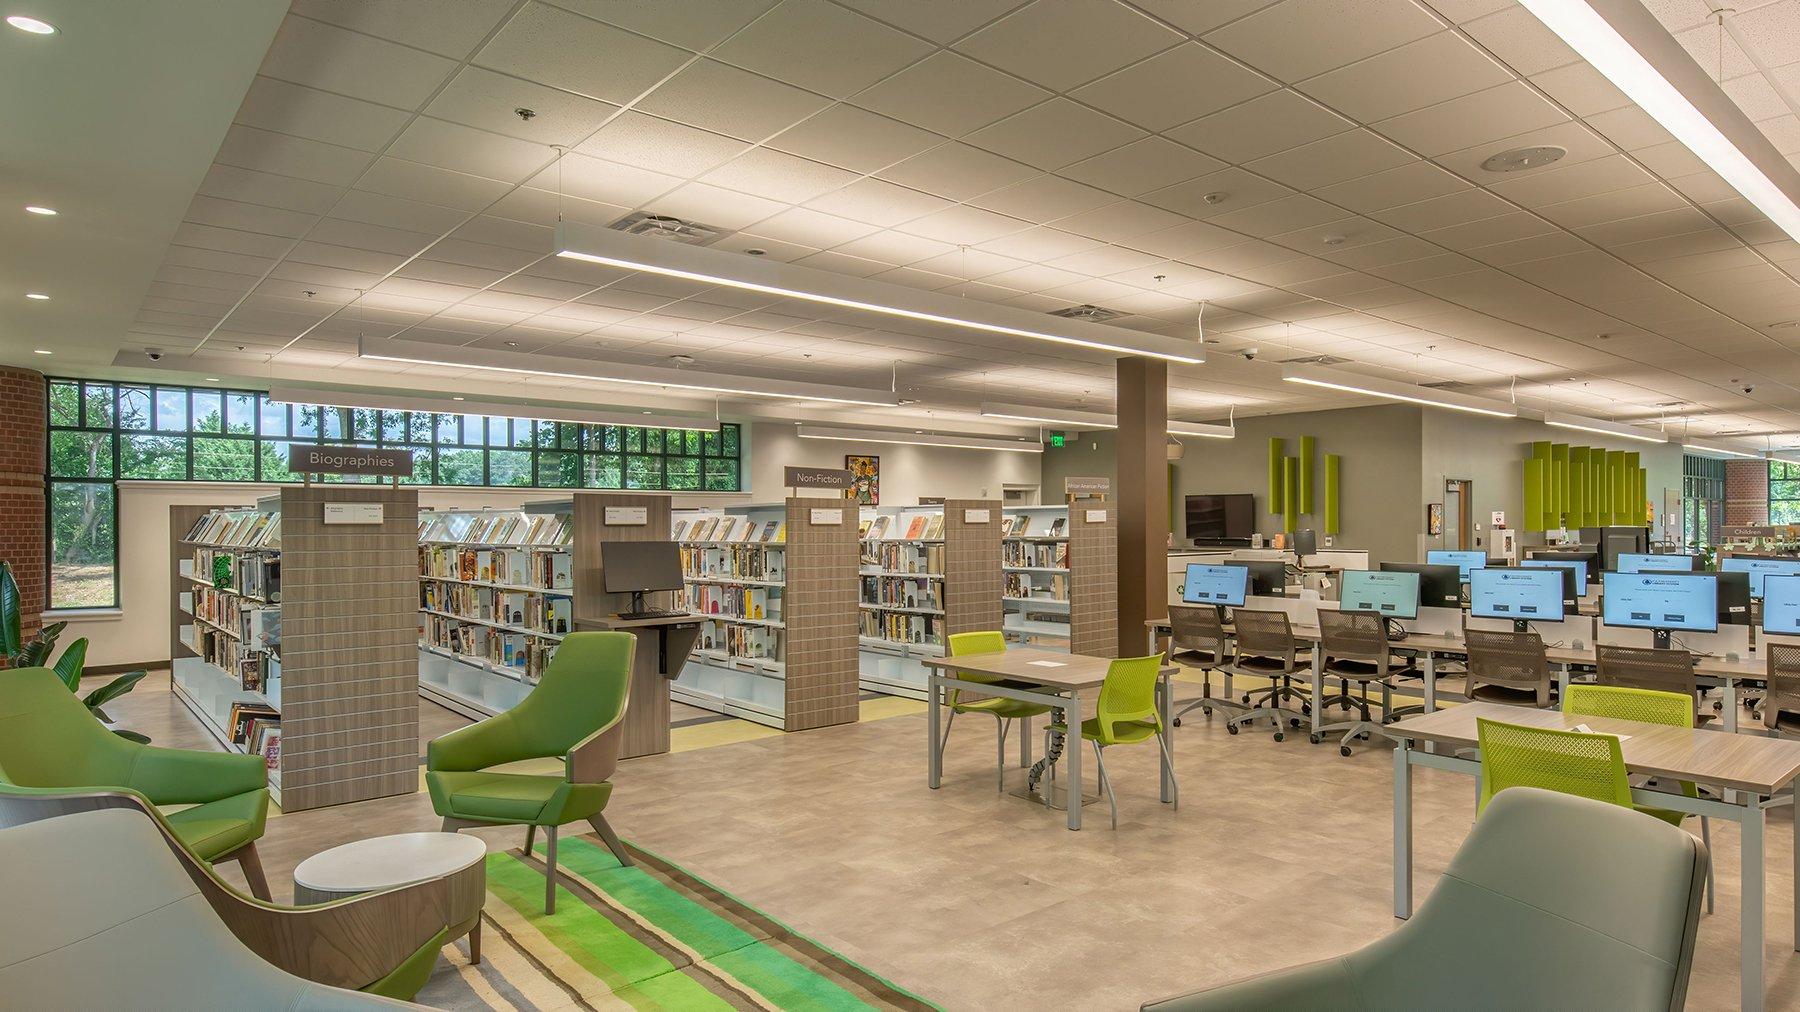 Hillsman Civic projects - Airports Government Facilities Libraries Community Centers